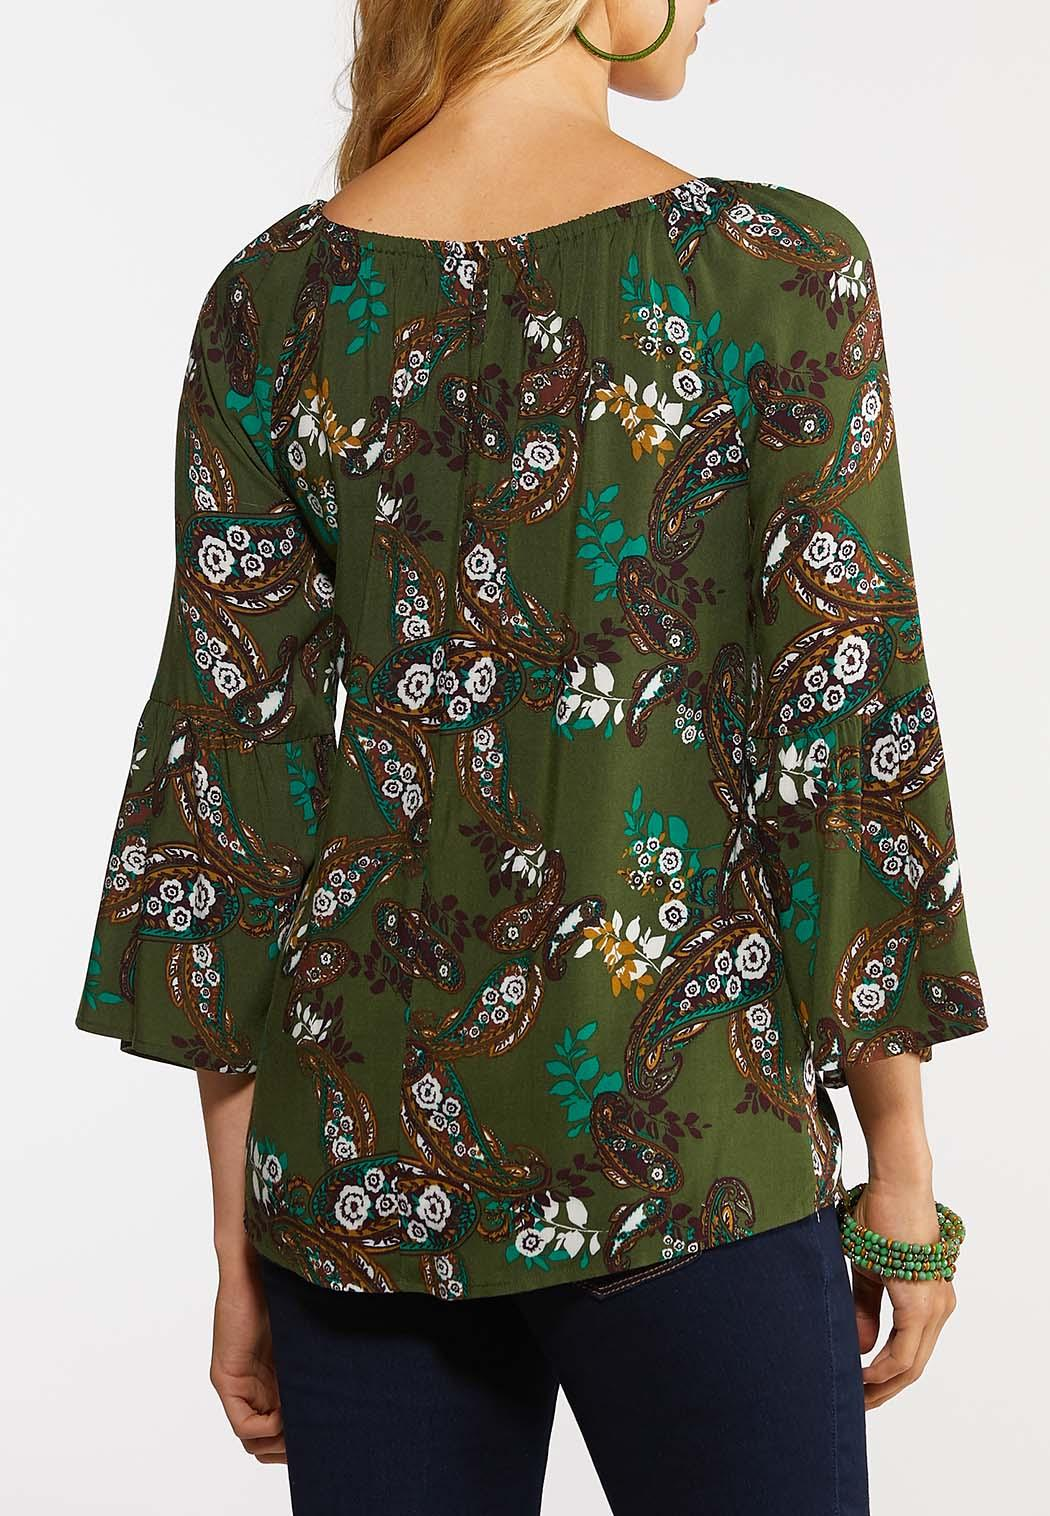 Olive Floral Paisley Top (Item #43988312)